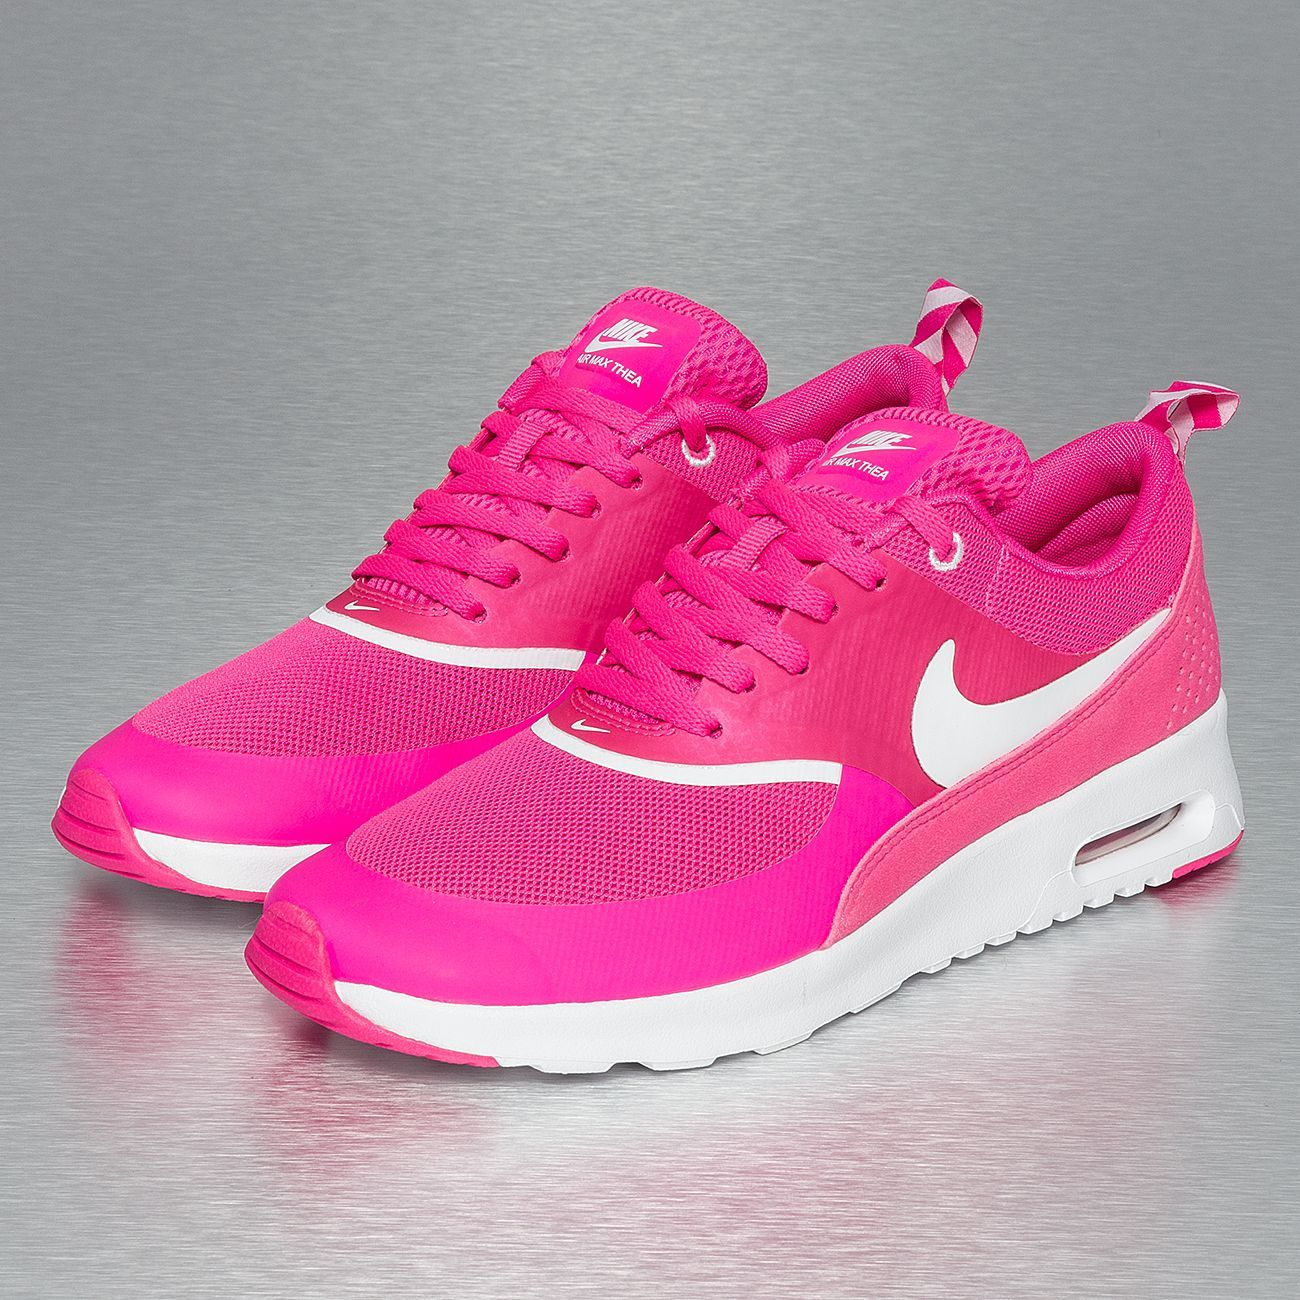 nike air max shop online